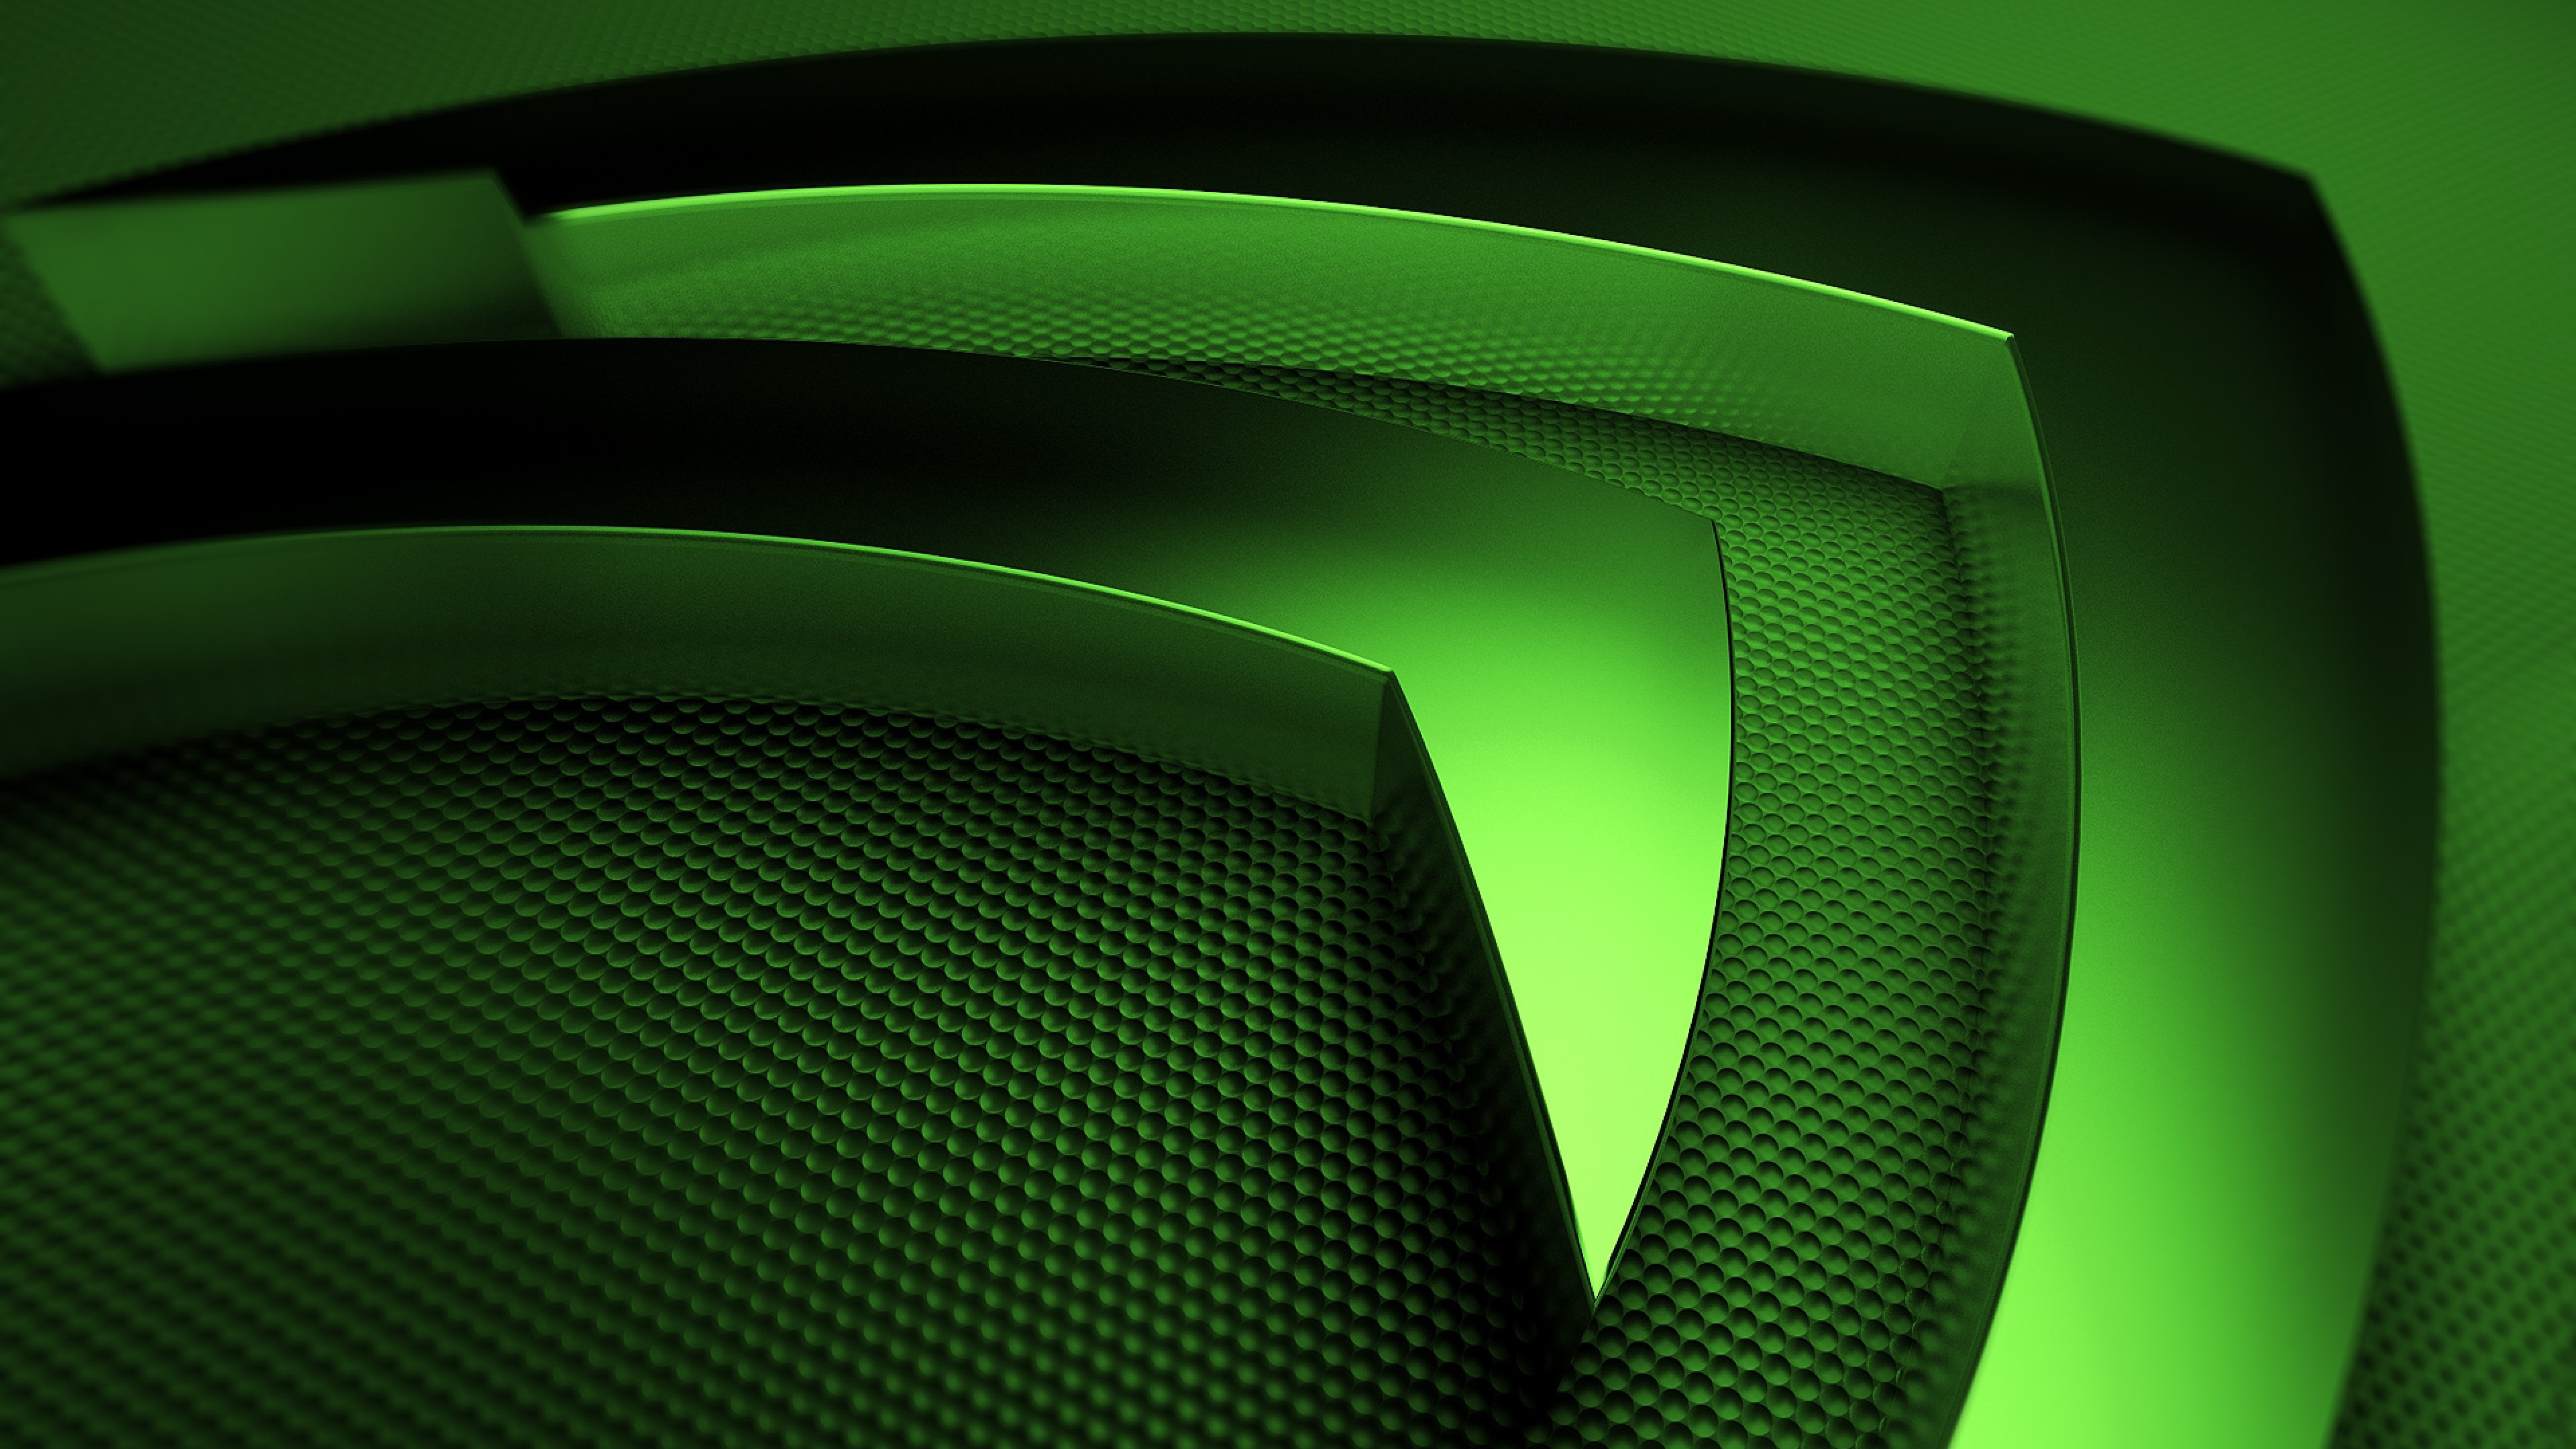 Awesome background pictures wallpapersafari - Nvidia Wallpaper 3840x2160 Wallpapersafari